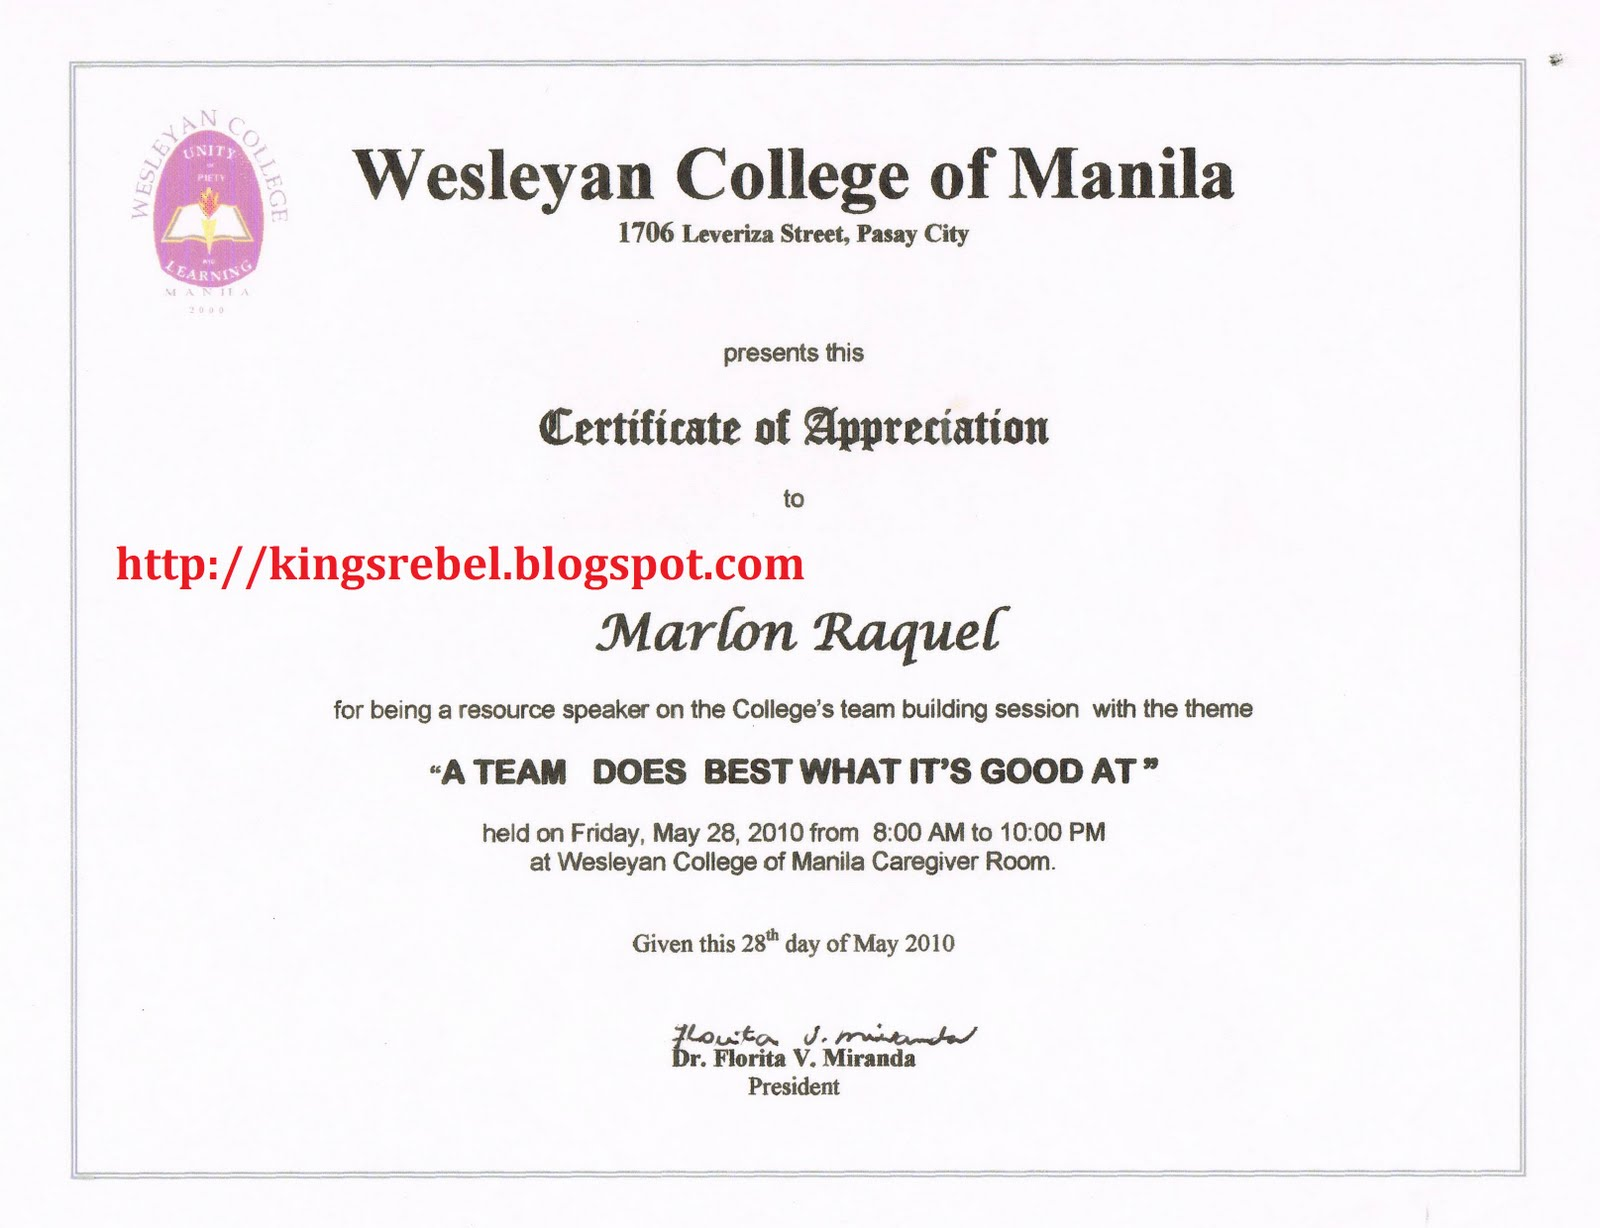 Examples of Certificate of Appreciation http://kingsrebel.blogspot.com/2011/02/example-of-certificate-of-appreciation_16.html